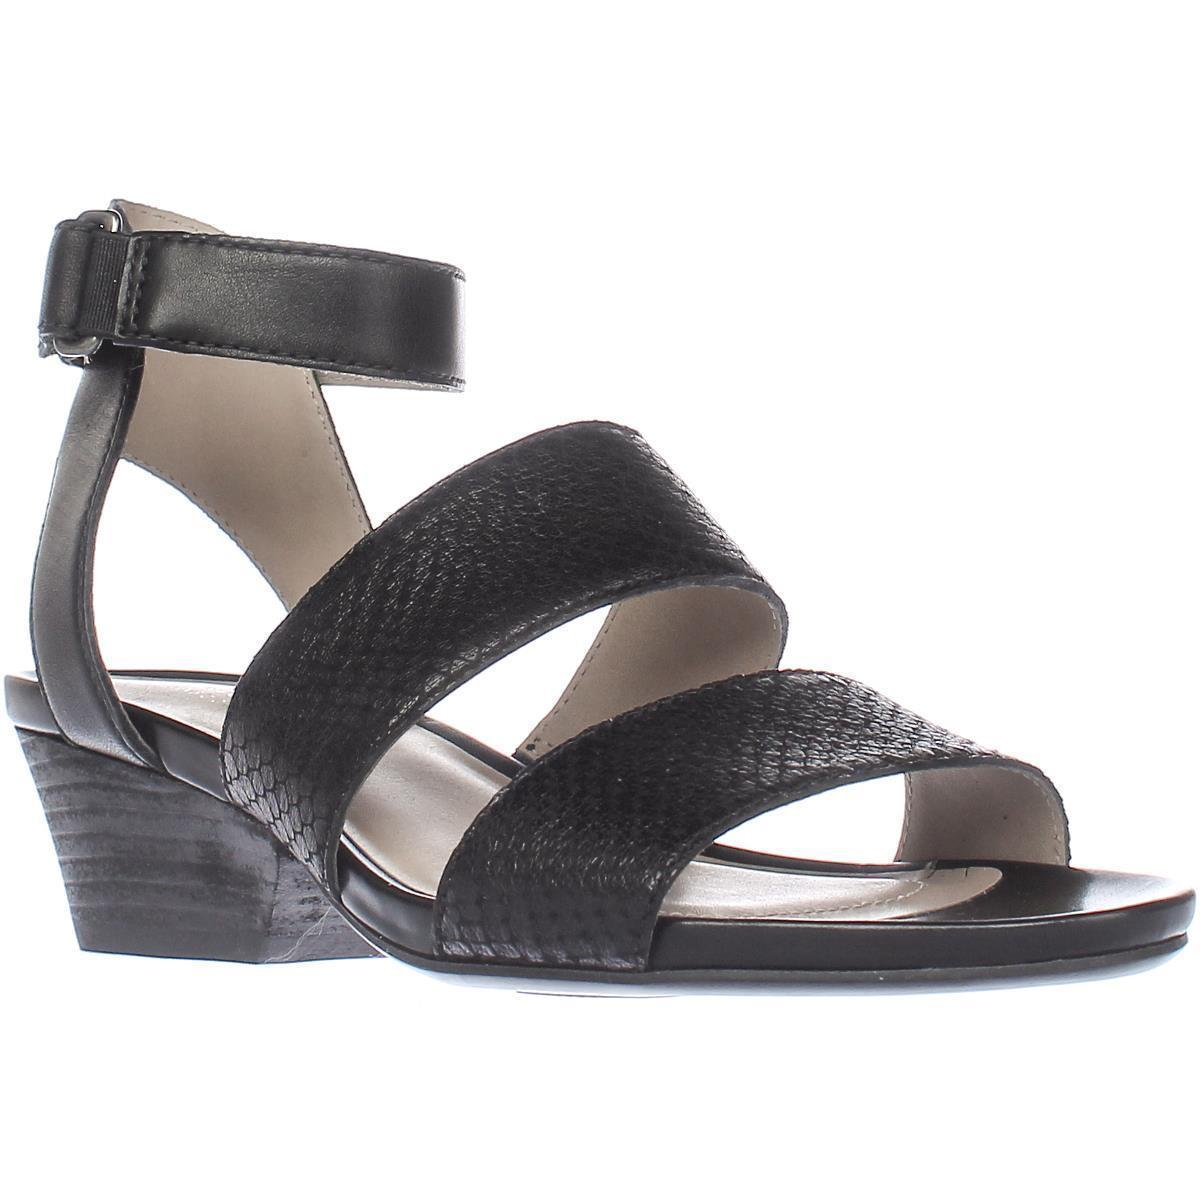 Womens Naturalizer Gracelyn Comfrot Heel Sandals, Black Leather by Naturalizer